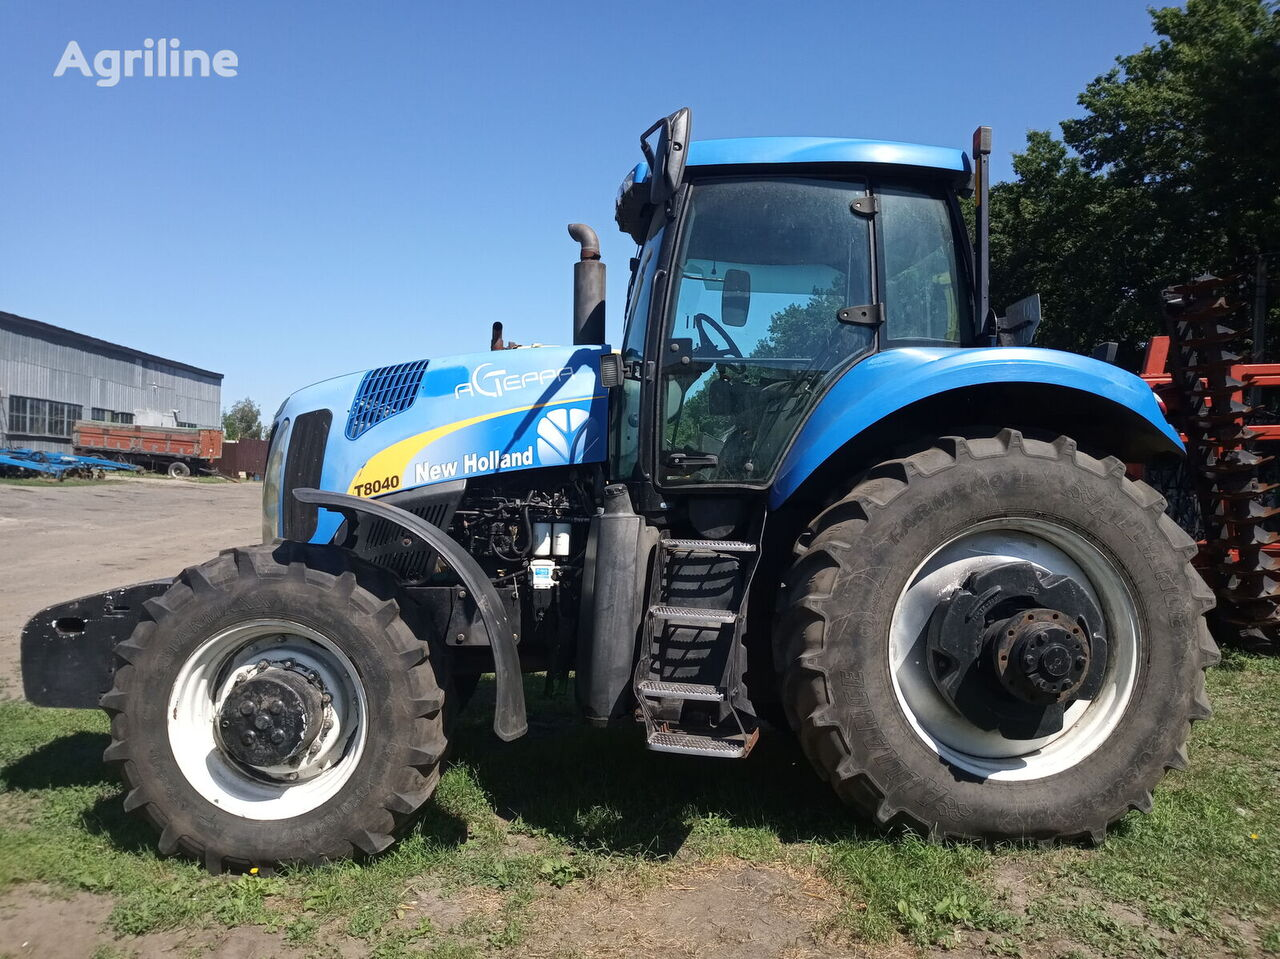 NEW HOLLAND T 8040 wheel tractor